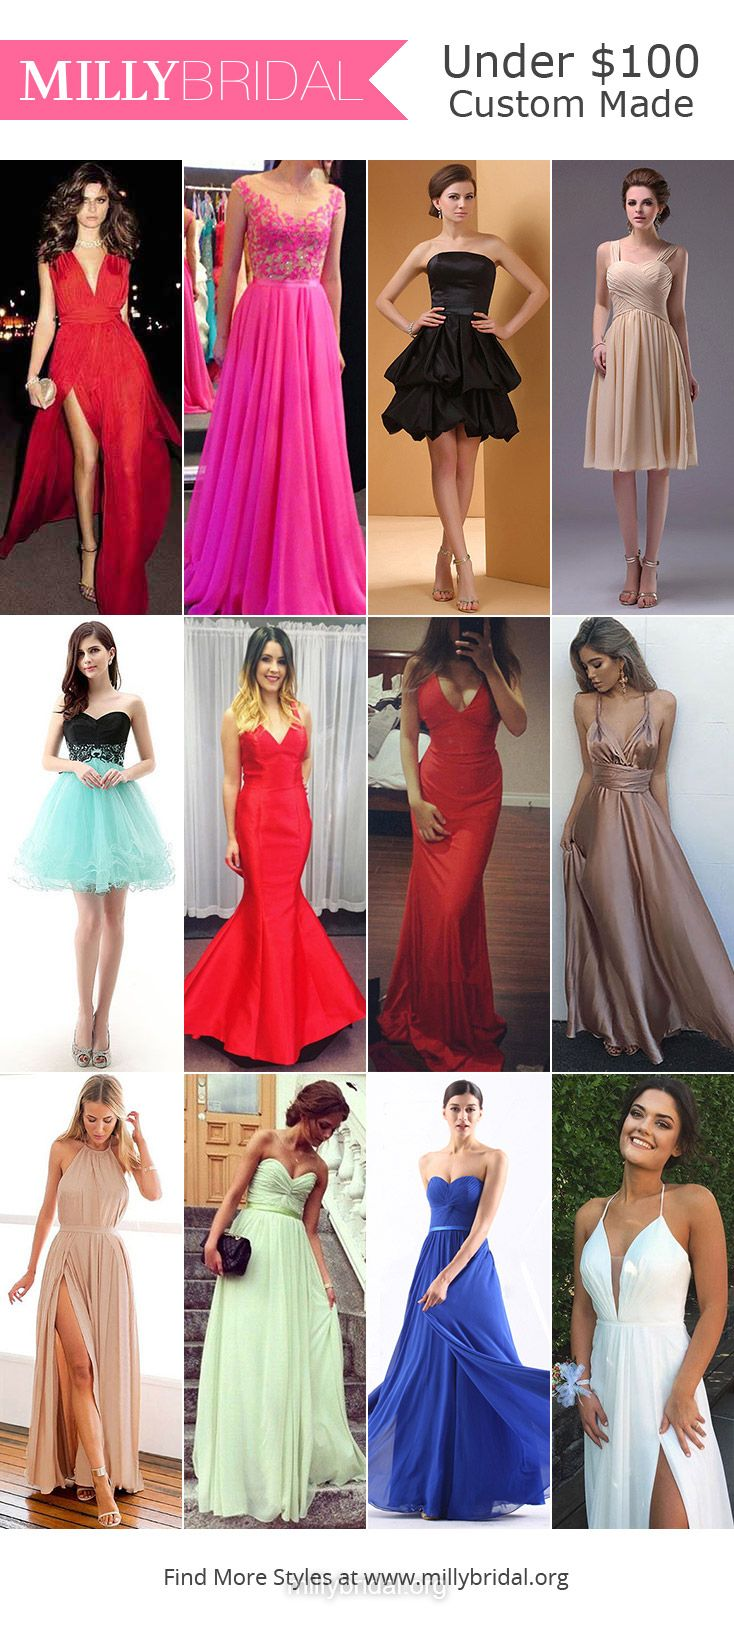 Cheap Prom Dresses Under 100, Prom Dresses Under 100 Long, Prom Dresses Under 100 Spring, Prom Dresses Under 100 Modest, Prom Dresses Under 100 Open Backs, Plus Size Prom Dresses Under 100, Prom Dresses Under 100 One Shoulder, Prom Dresses Under 100 Spaghetti Straps